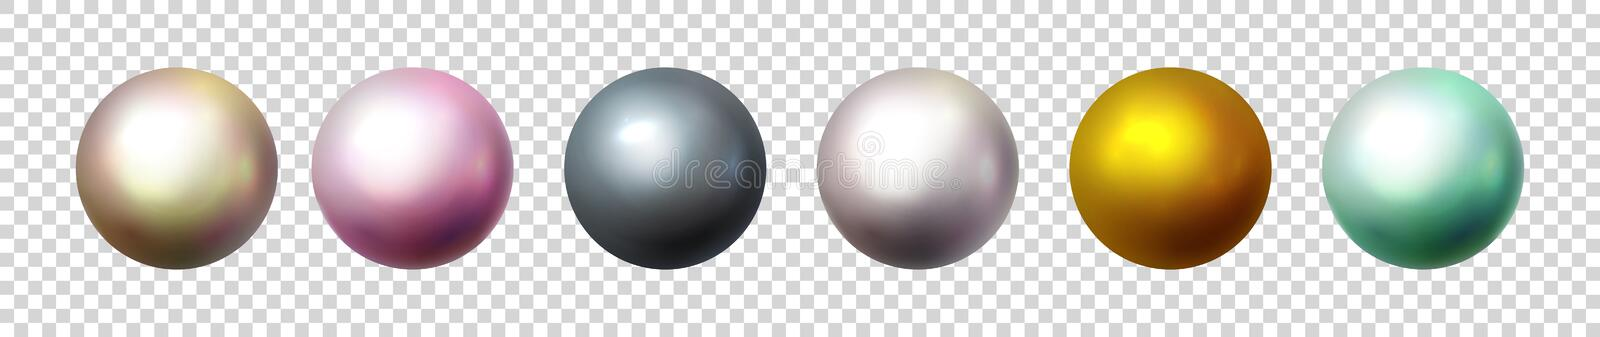 Shiny pearl isolated on transparent background. Multicolored orbs, spherical balls and 3D circle glass buttons. Glossy stock illustration